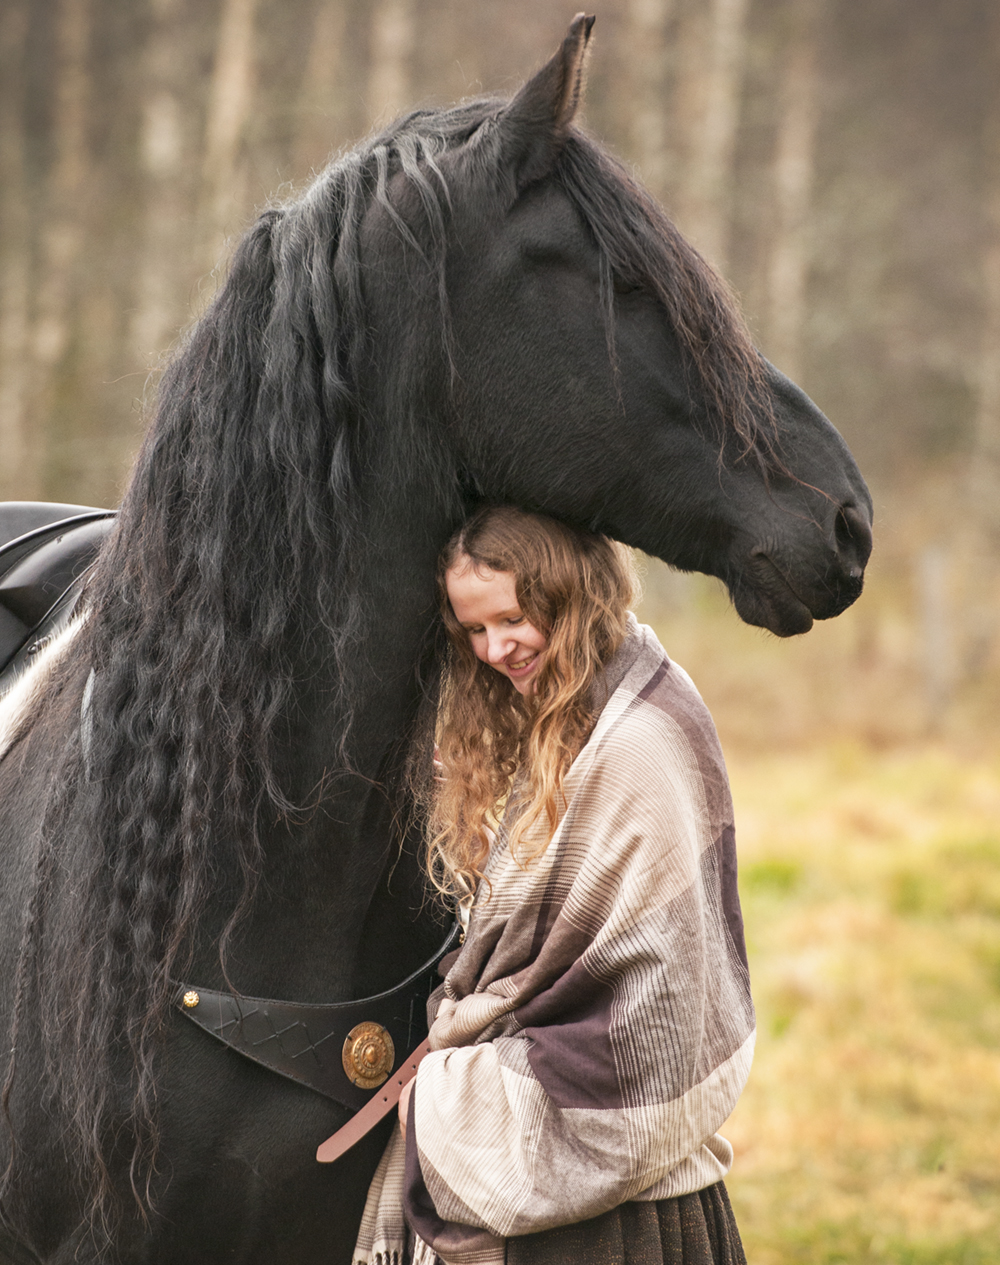 outlander_photoshoot_friesian20